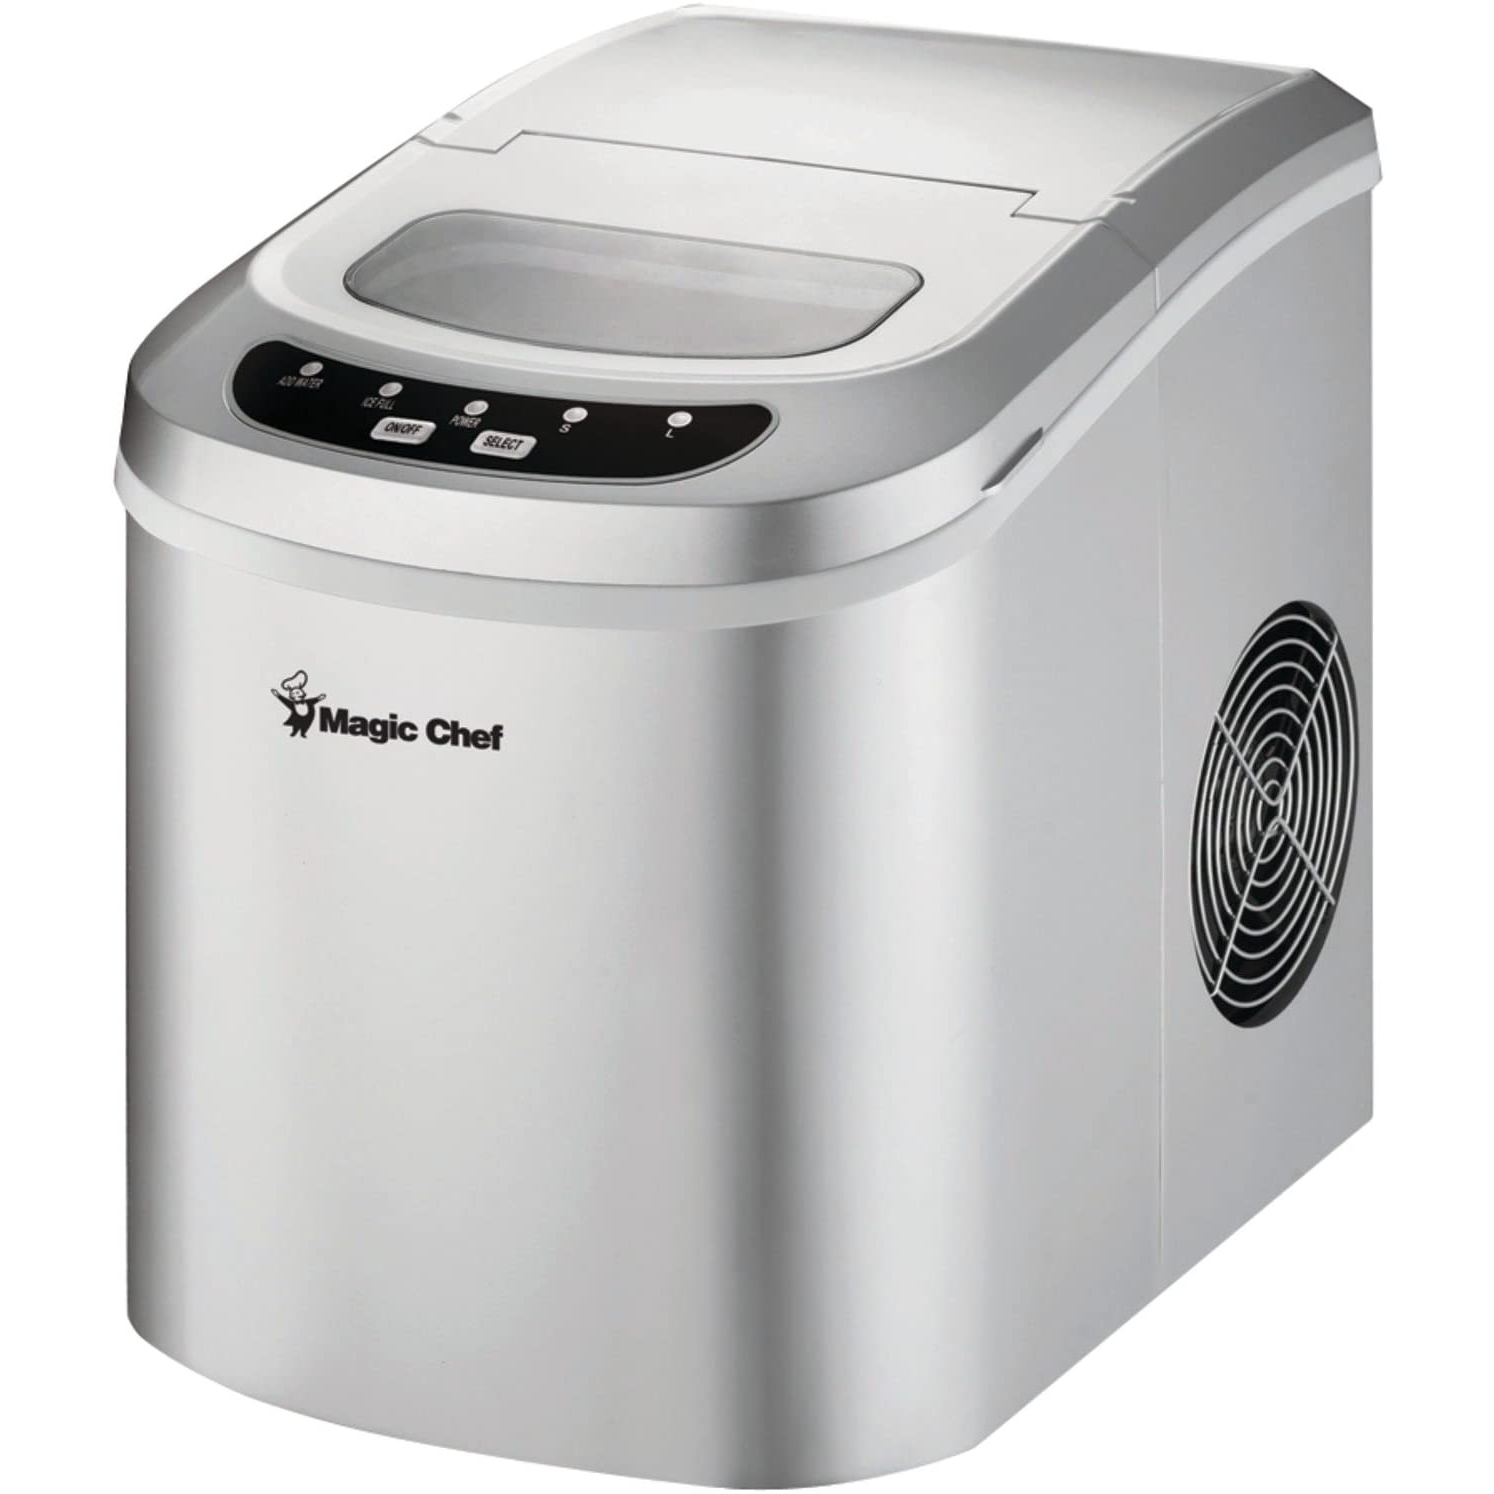 Magic Chef 27-Lb. Portable Countertop Ice Maker in Silver on a white background